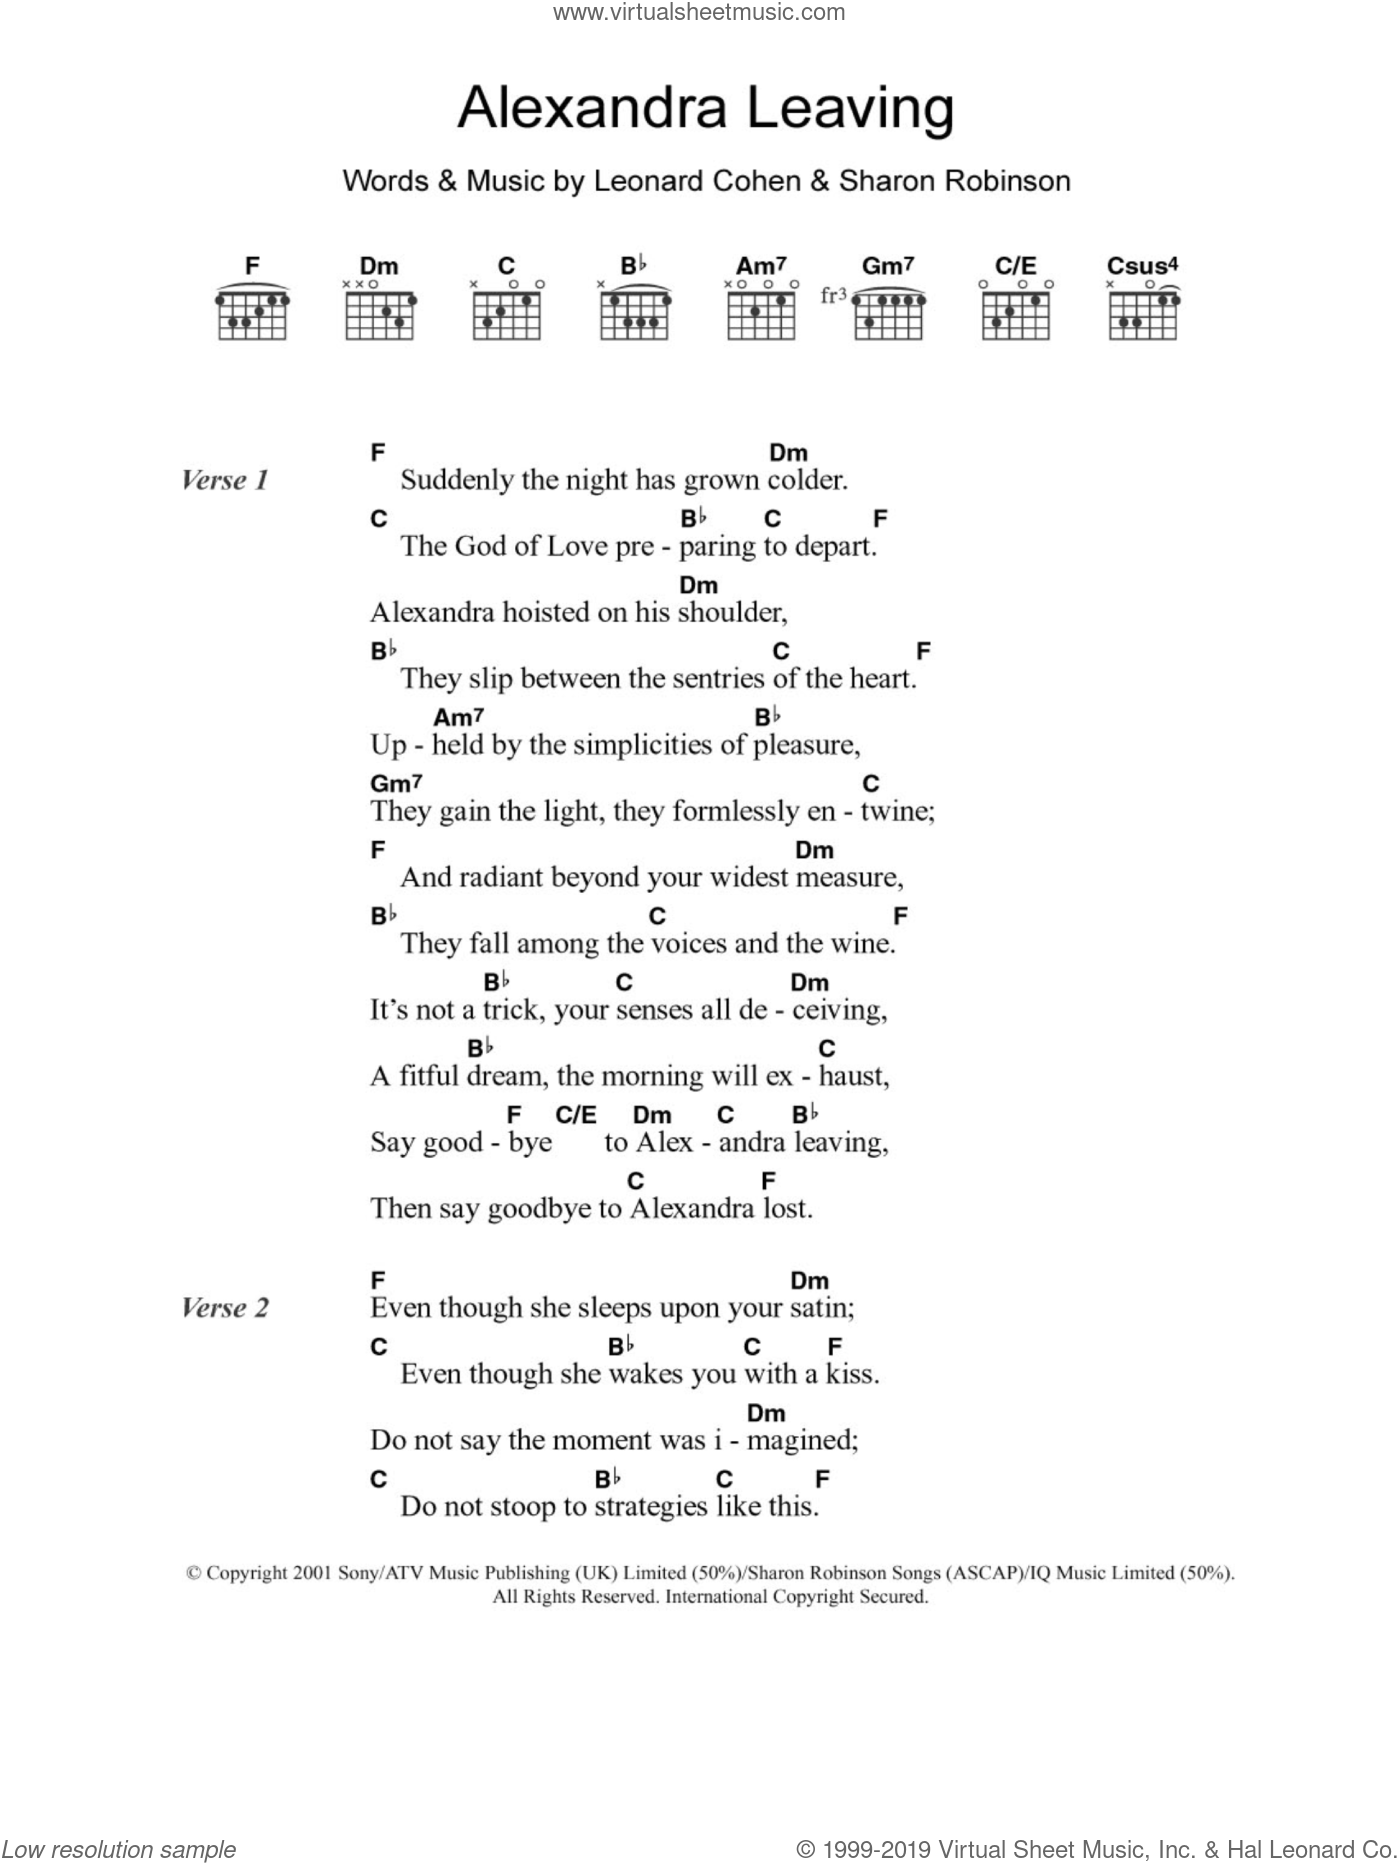 Alexandra Leaving sheet music for guitar (chords, lyrics, melody) by Sharon Robinson